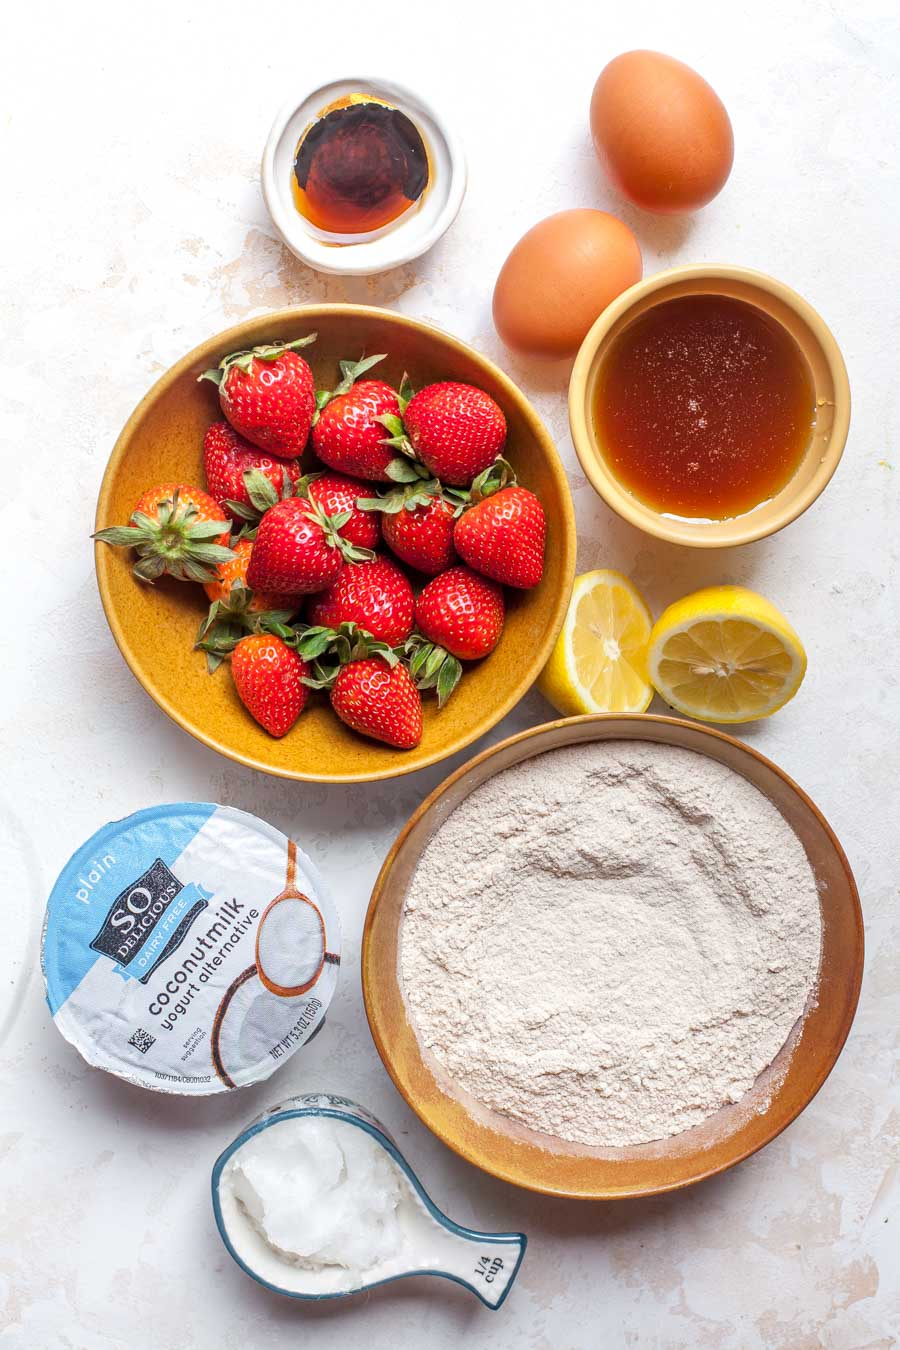 Ingredients for strawberry lemon bread